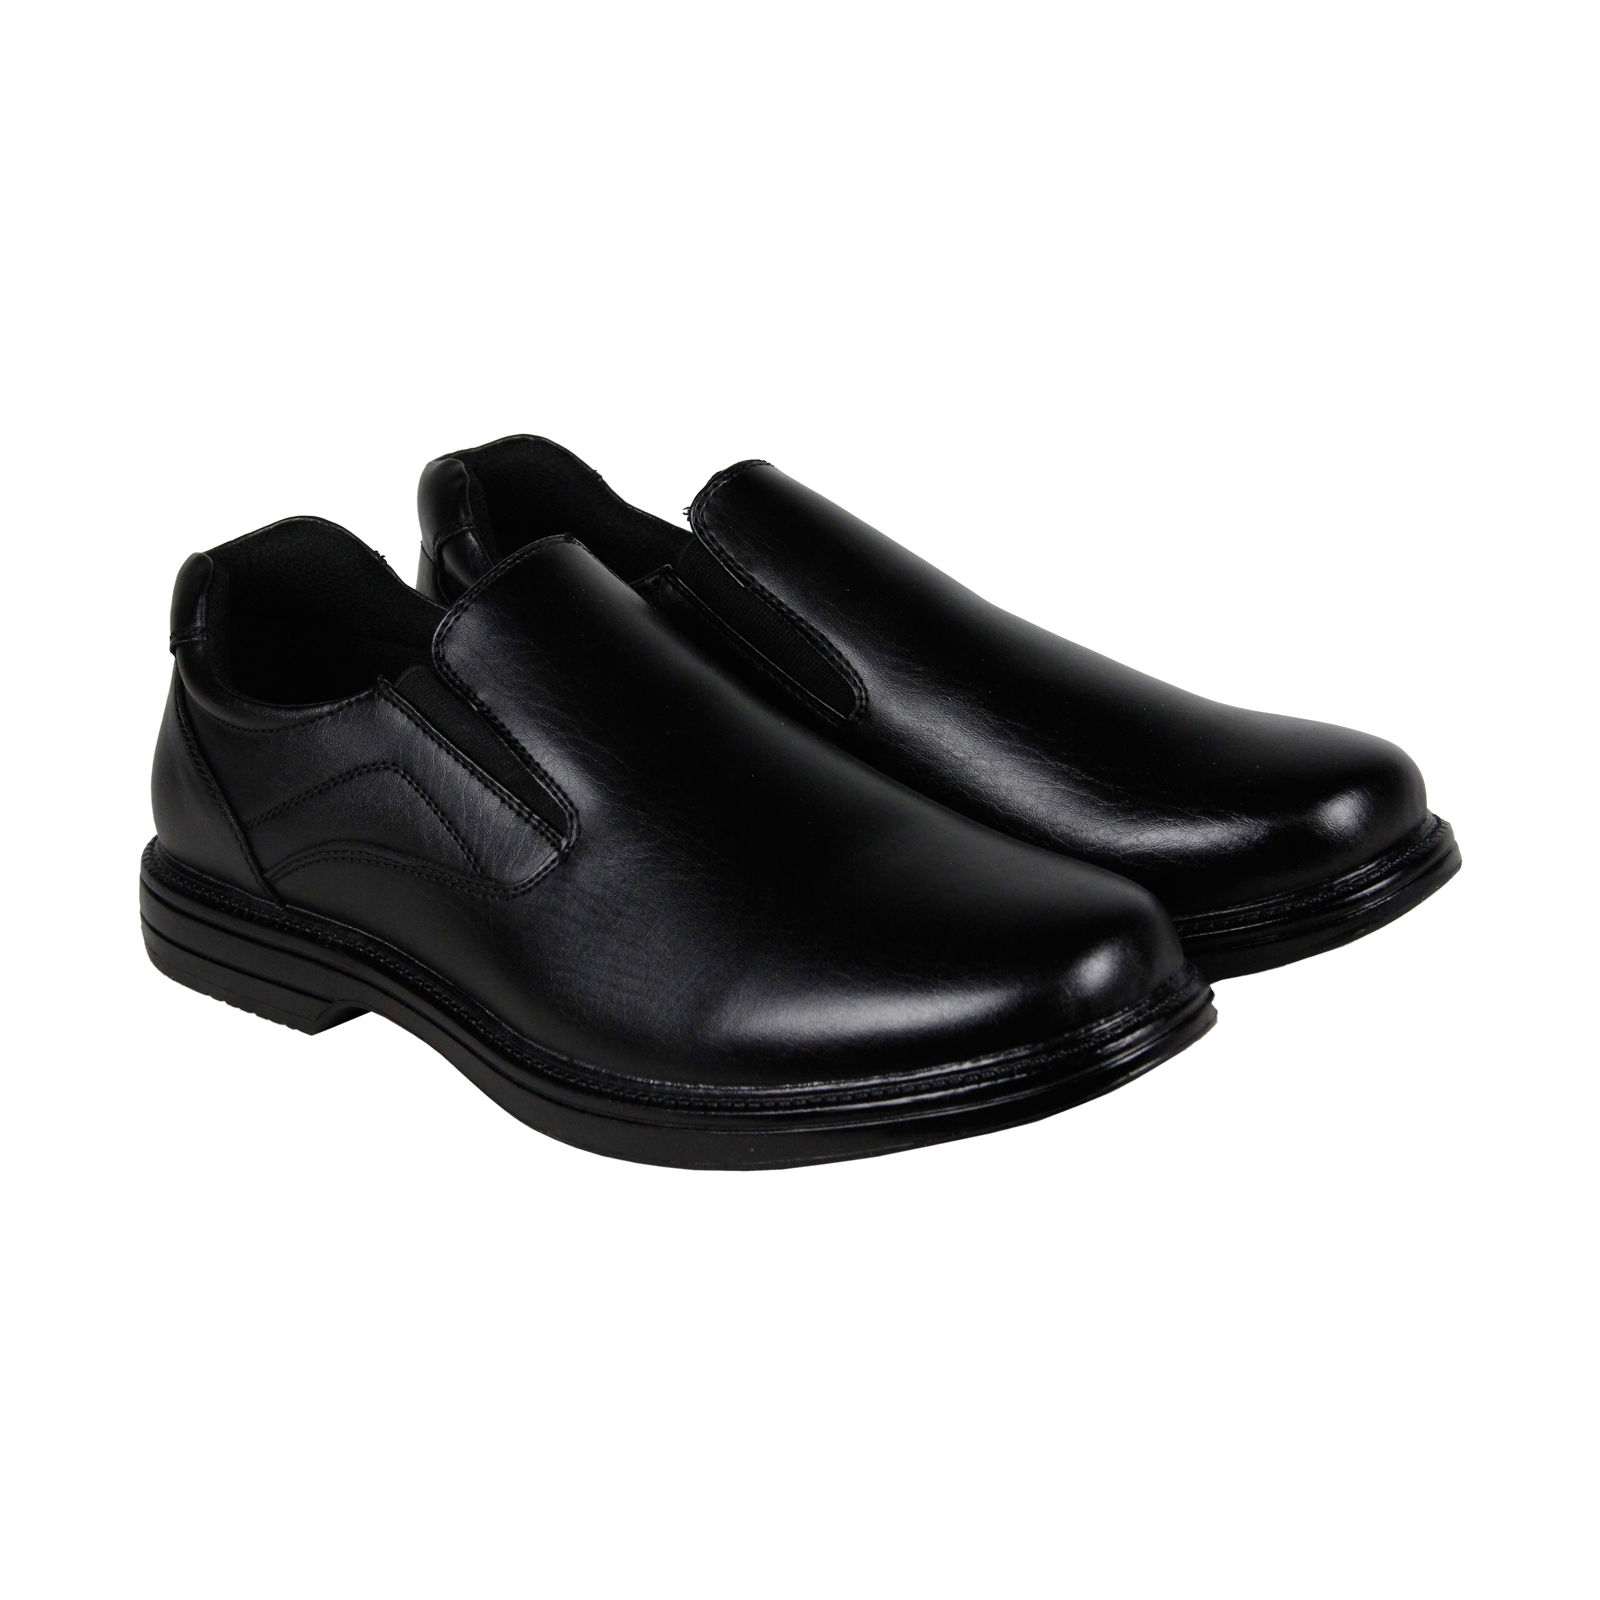 Click here to buy Deer Stags Nu Media Mens Black Leather Casual Dress Lace Up Oxfords Shoes by Deer Stags.